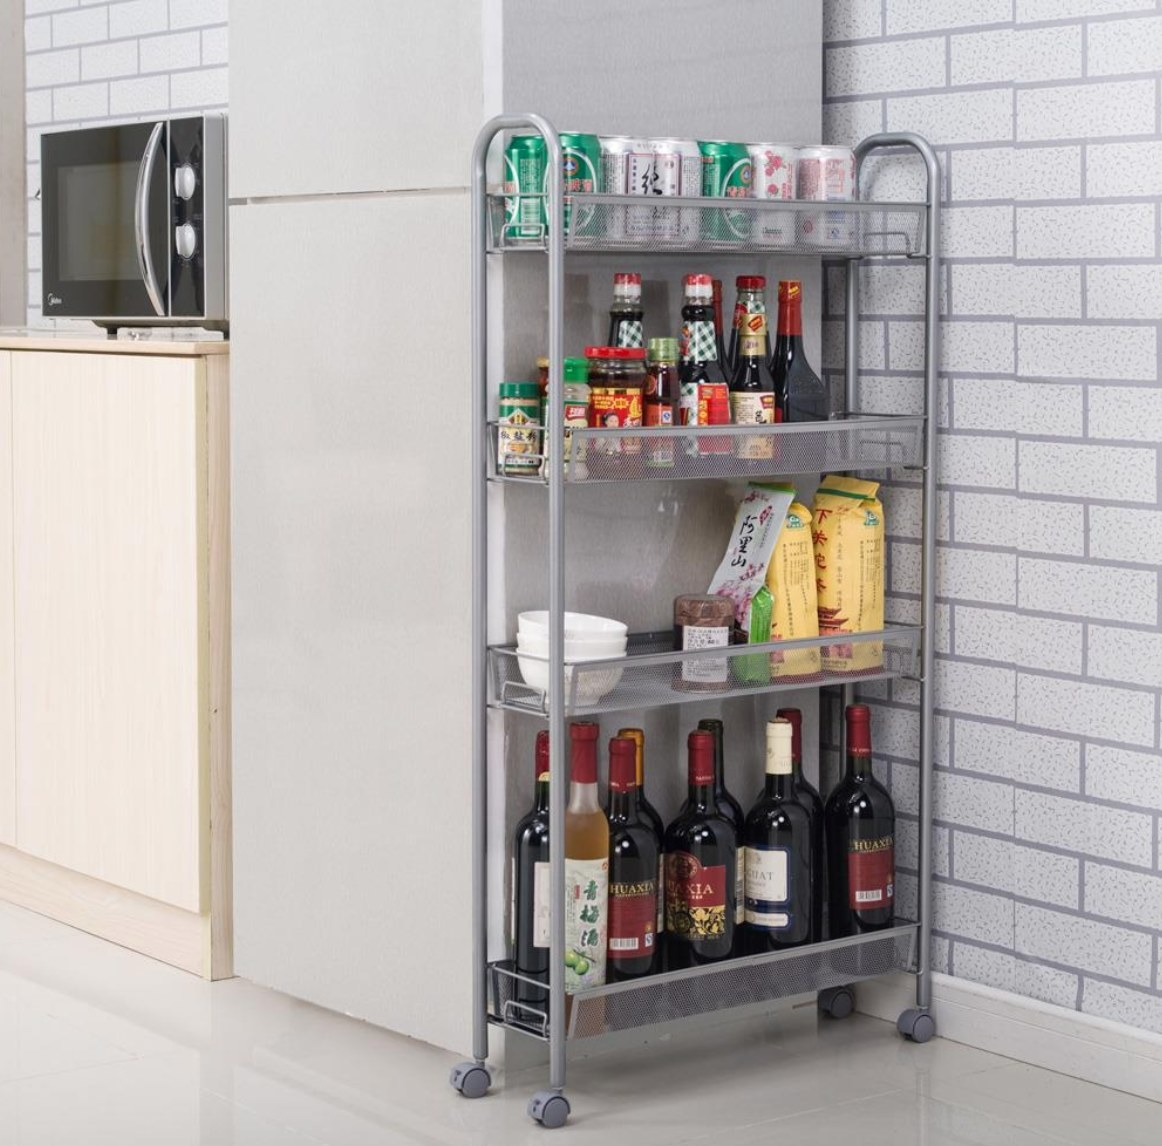 The rolling cart holding wine, soft drinks, and pantry items